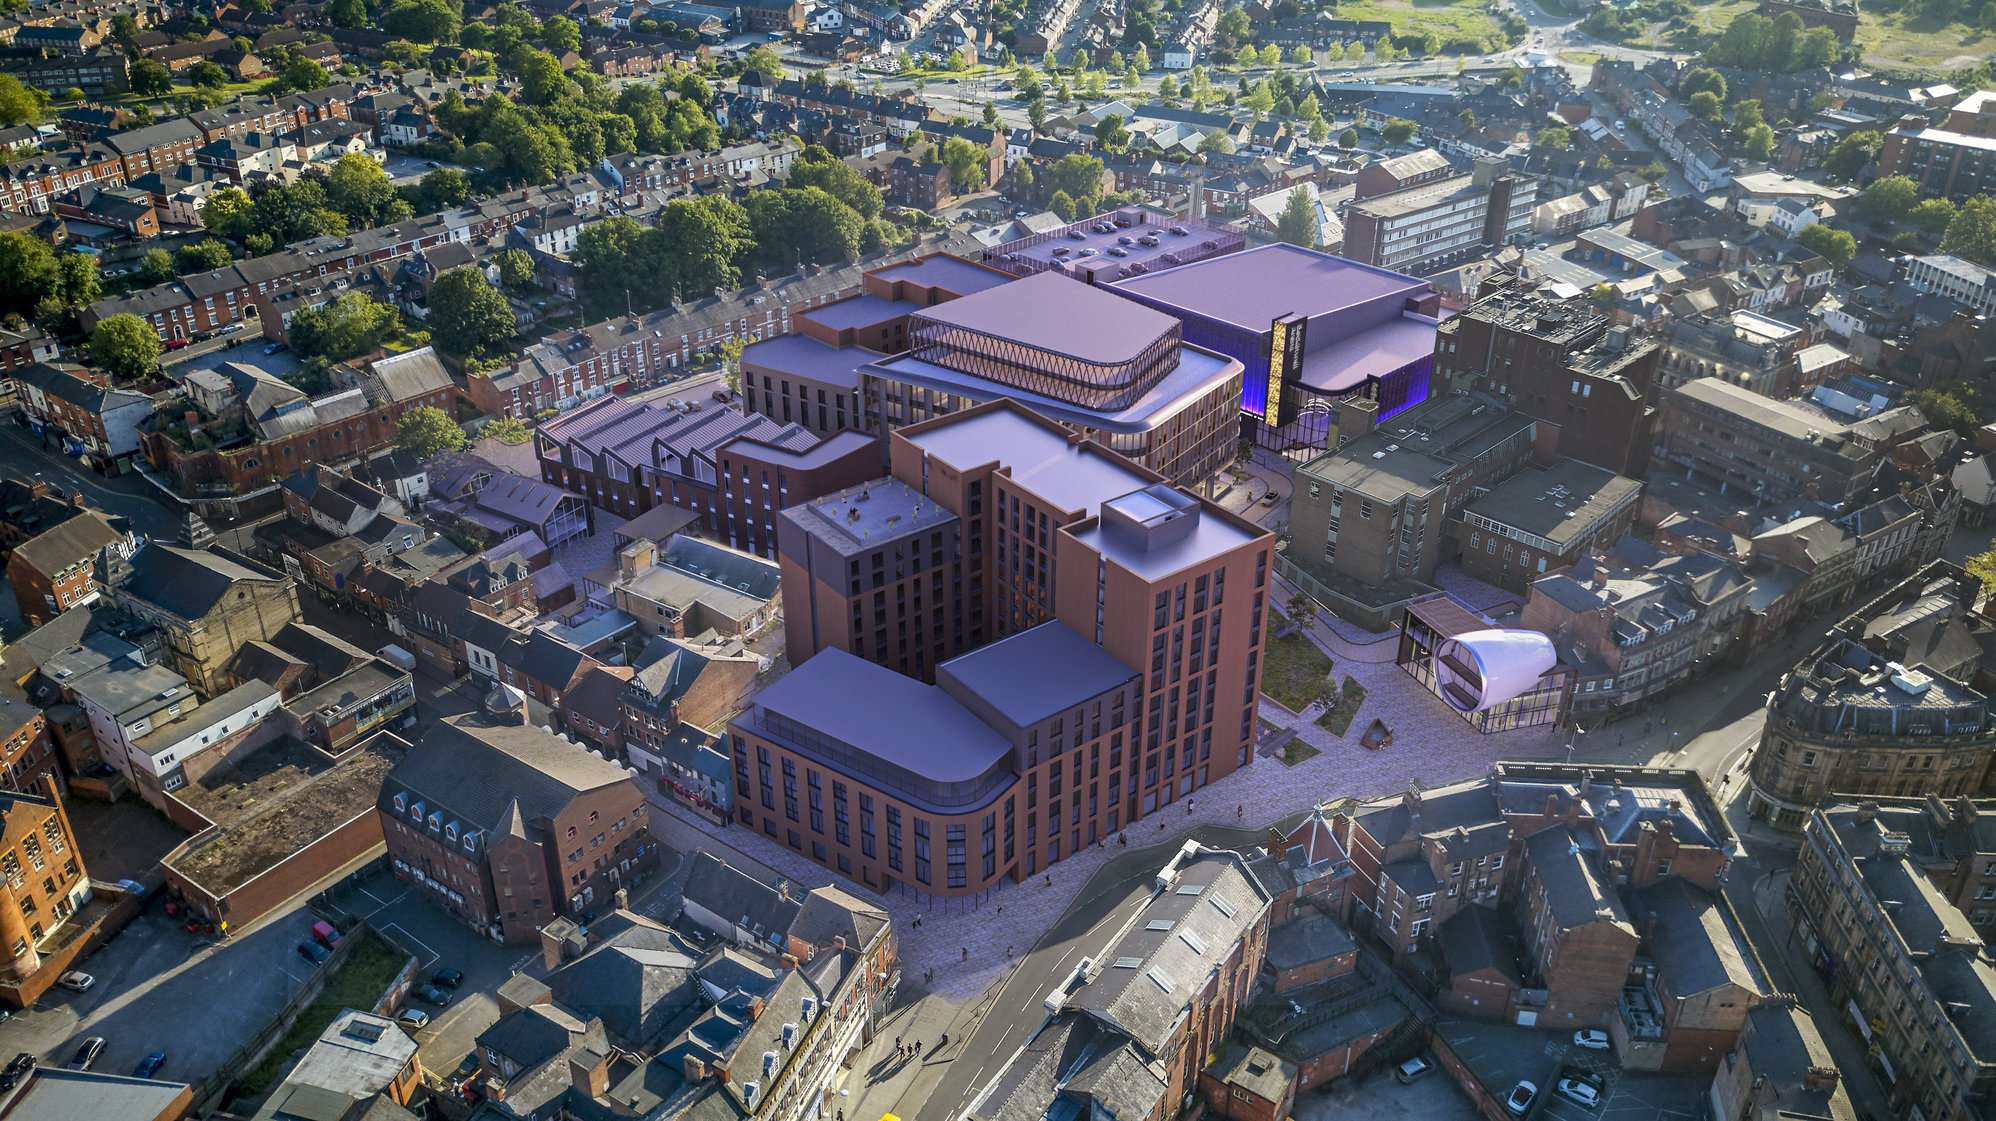 GMI AWARDED CONTRACT TO BUILD NEW £30M BUILD TO RENT WITHIN NEW BECKETWELL DEVELOPMENT IN DERBY